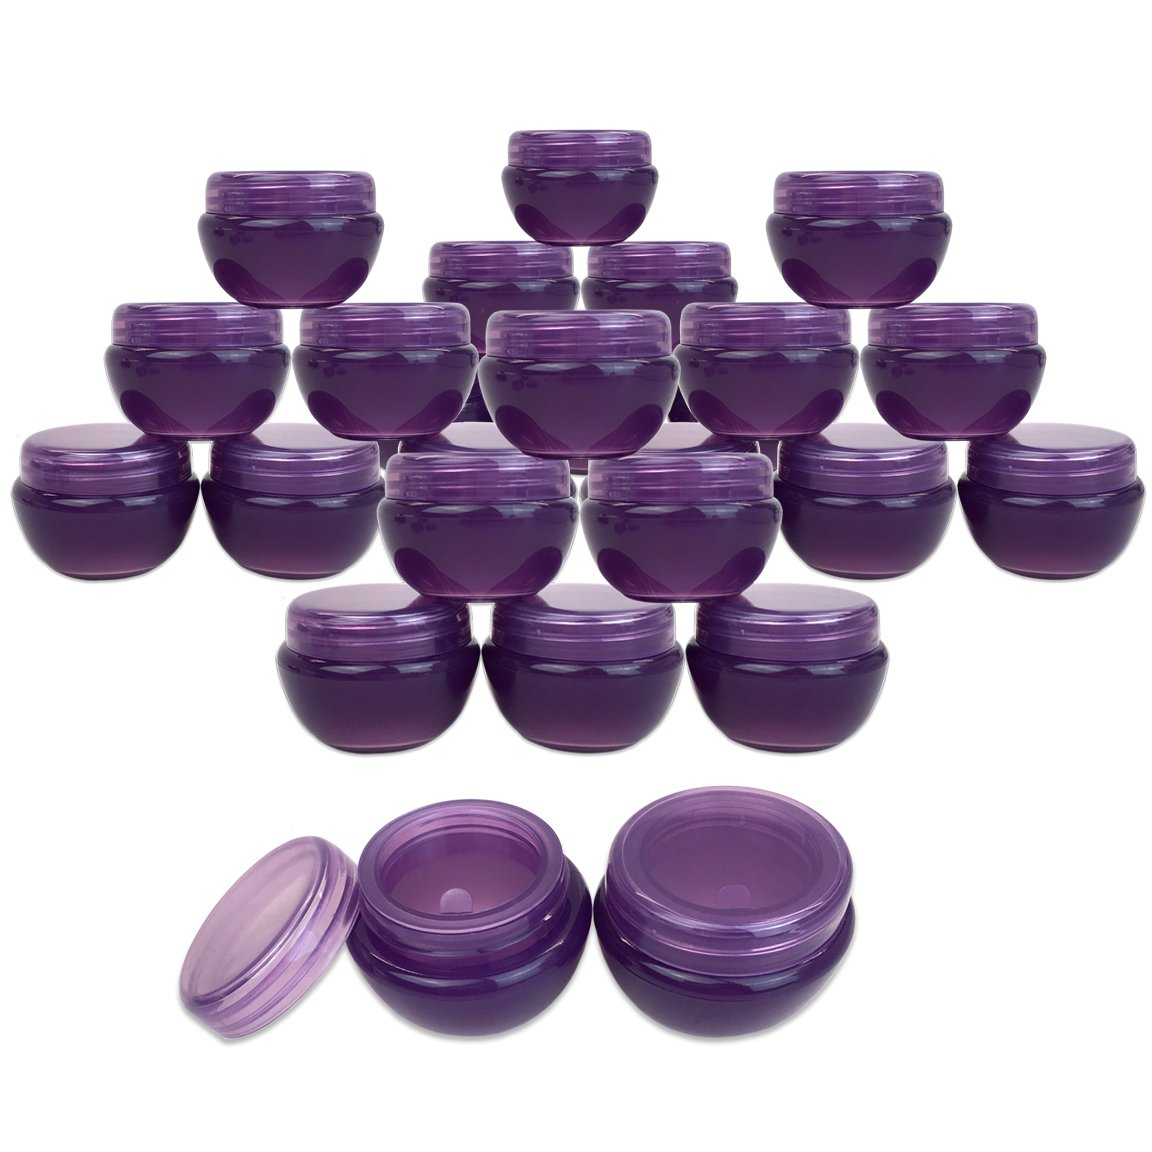 Beauticom 24 Pieces 10G 10ML Purple Frosted Container Jars with Inner Liner for Lotion, Toners, Lip Balm, Makeup Samples – BPA Free